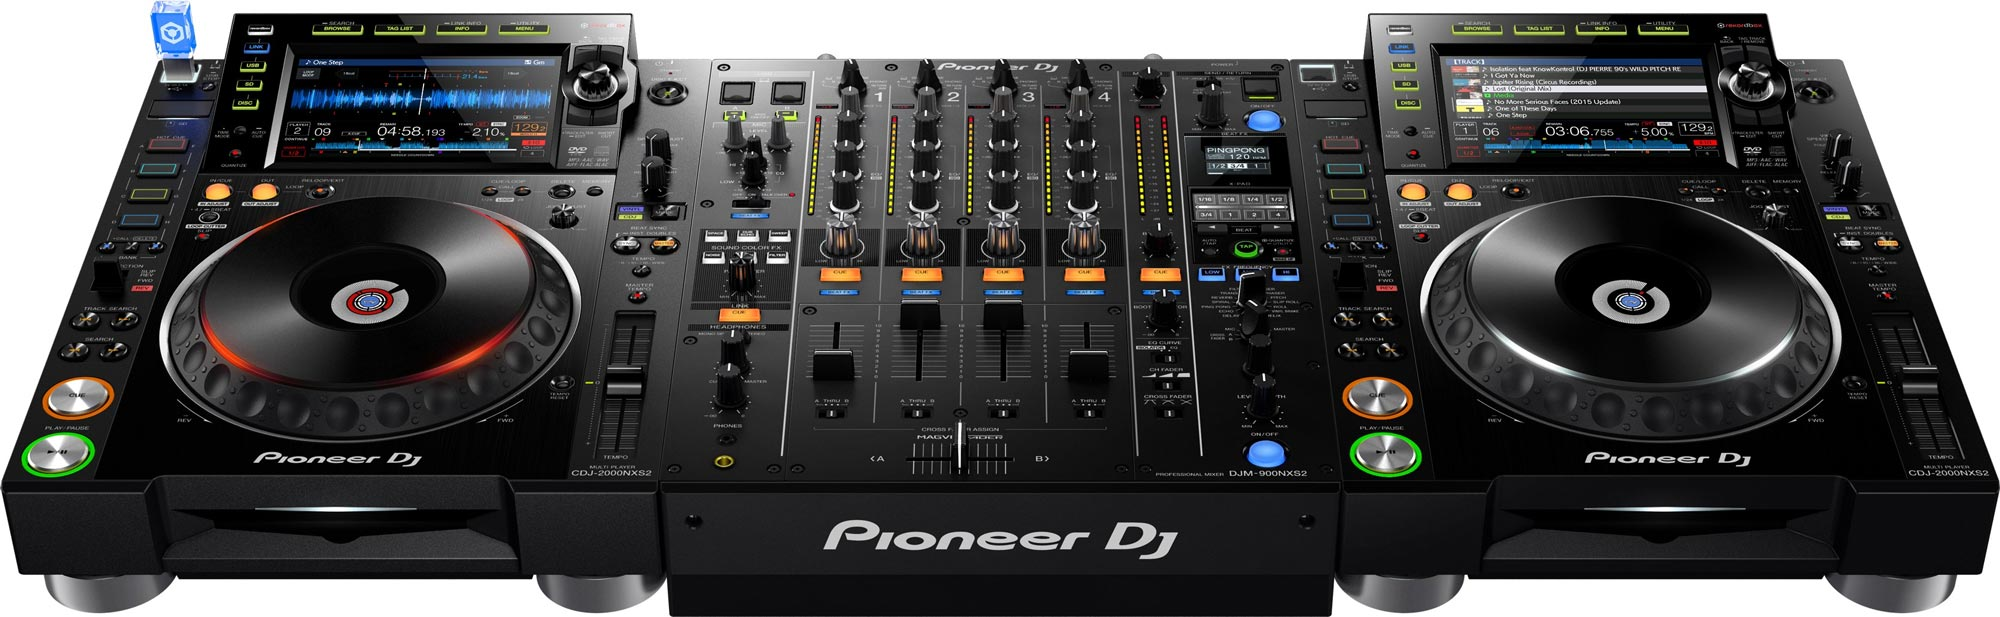 Auto Dj Software pioneer cdj 1000 Mk3 skin free download